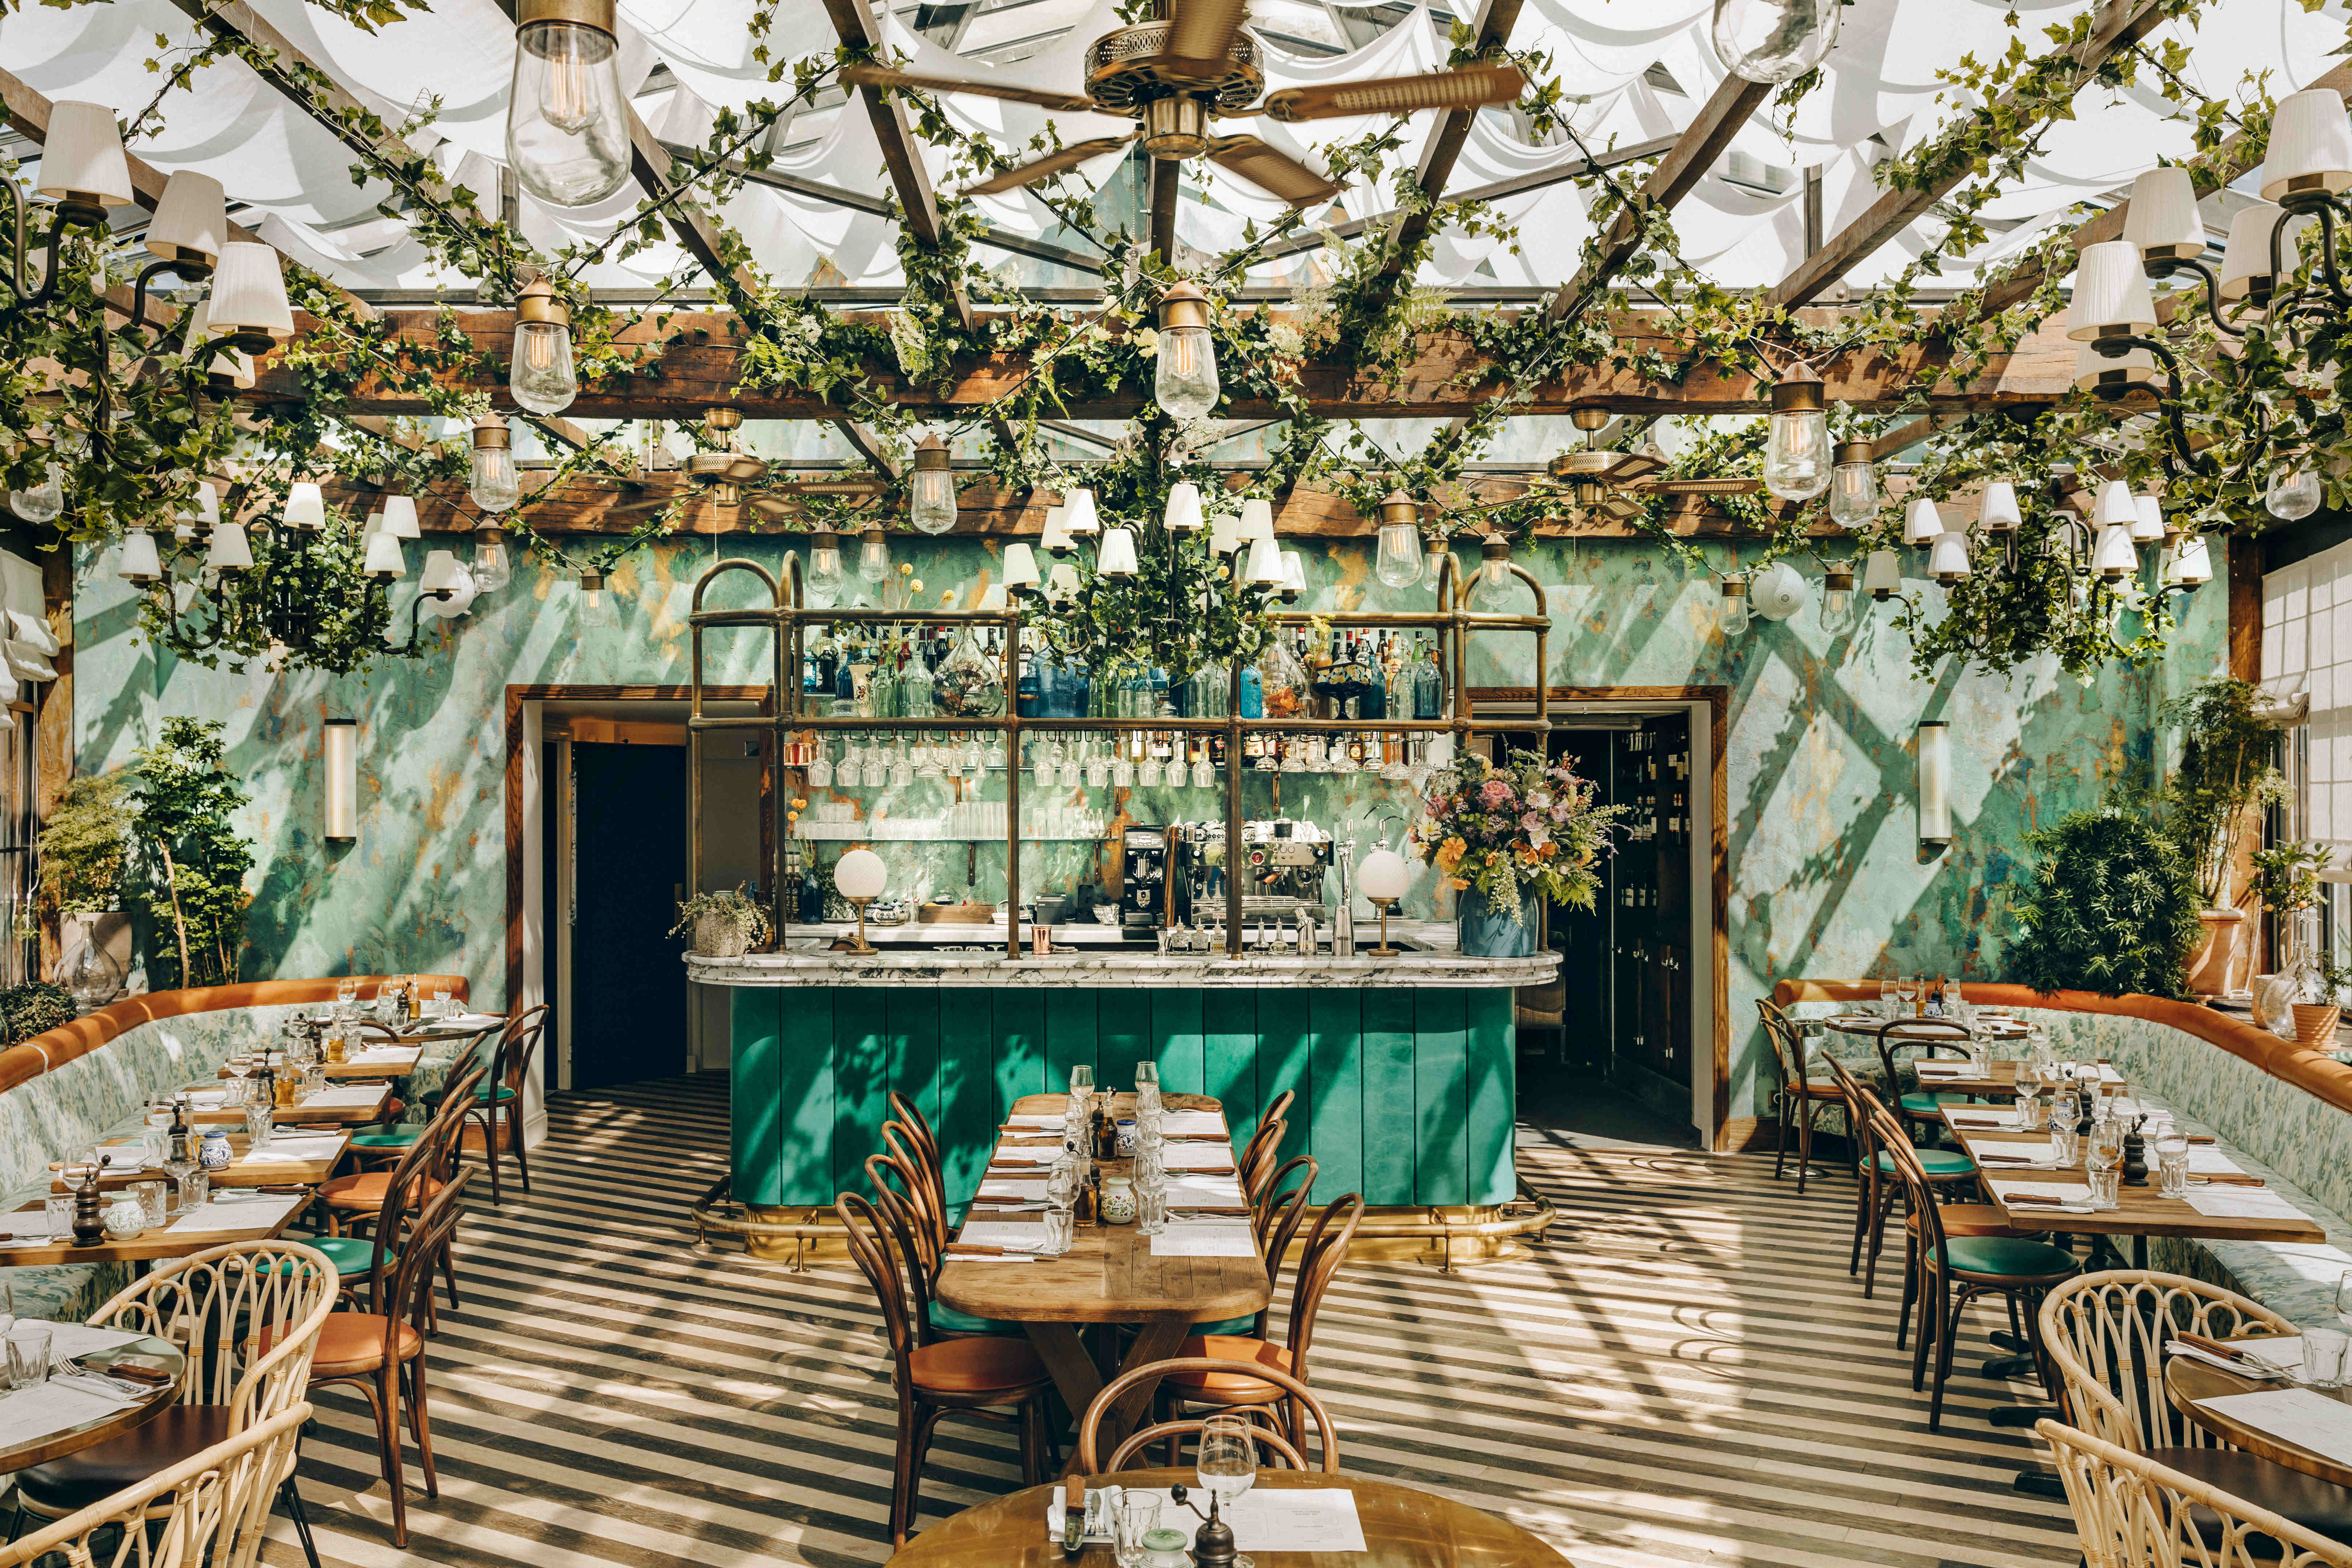 The interior of the restaurant is filled with plants.